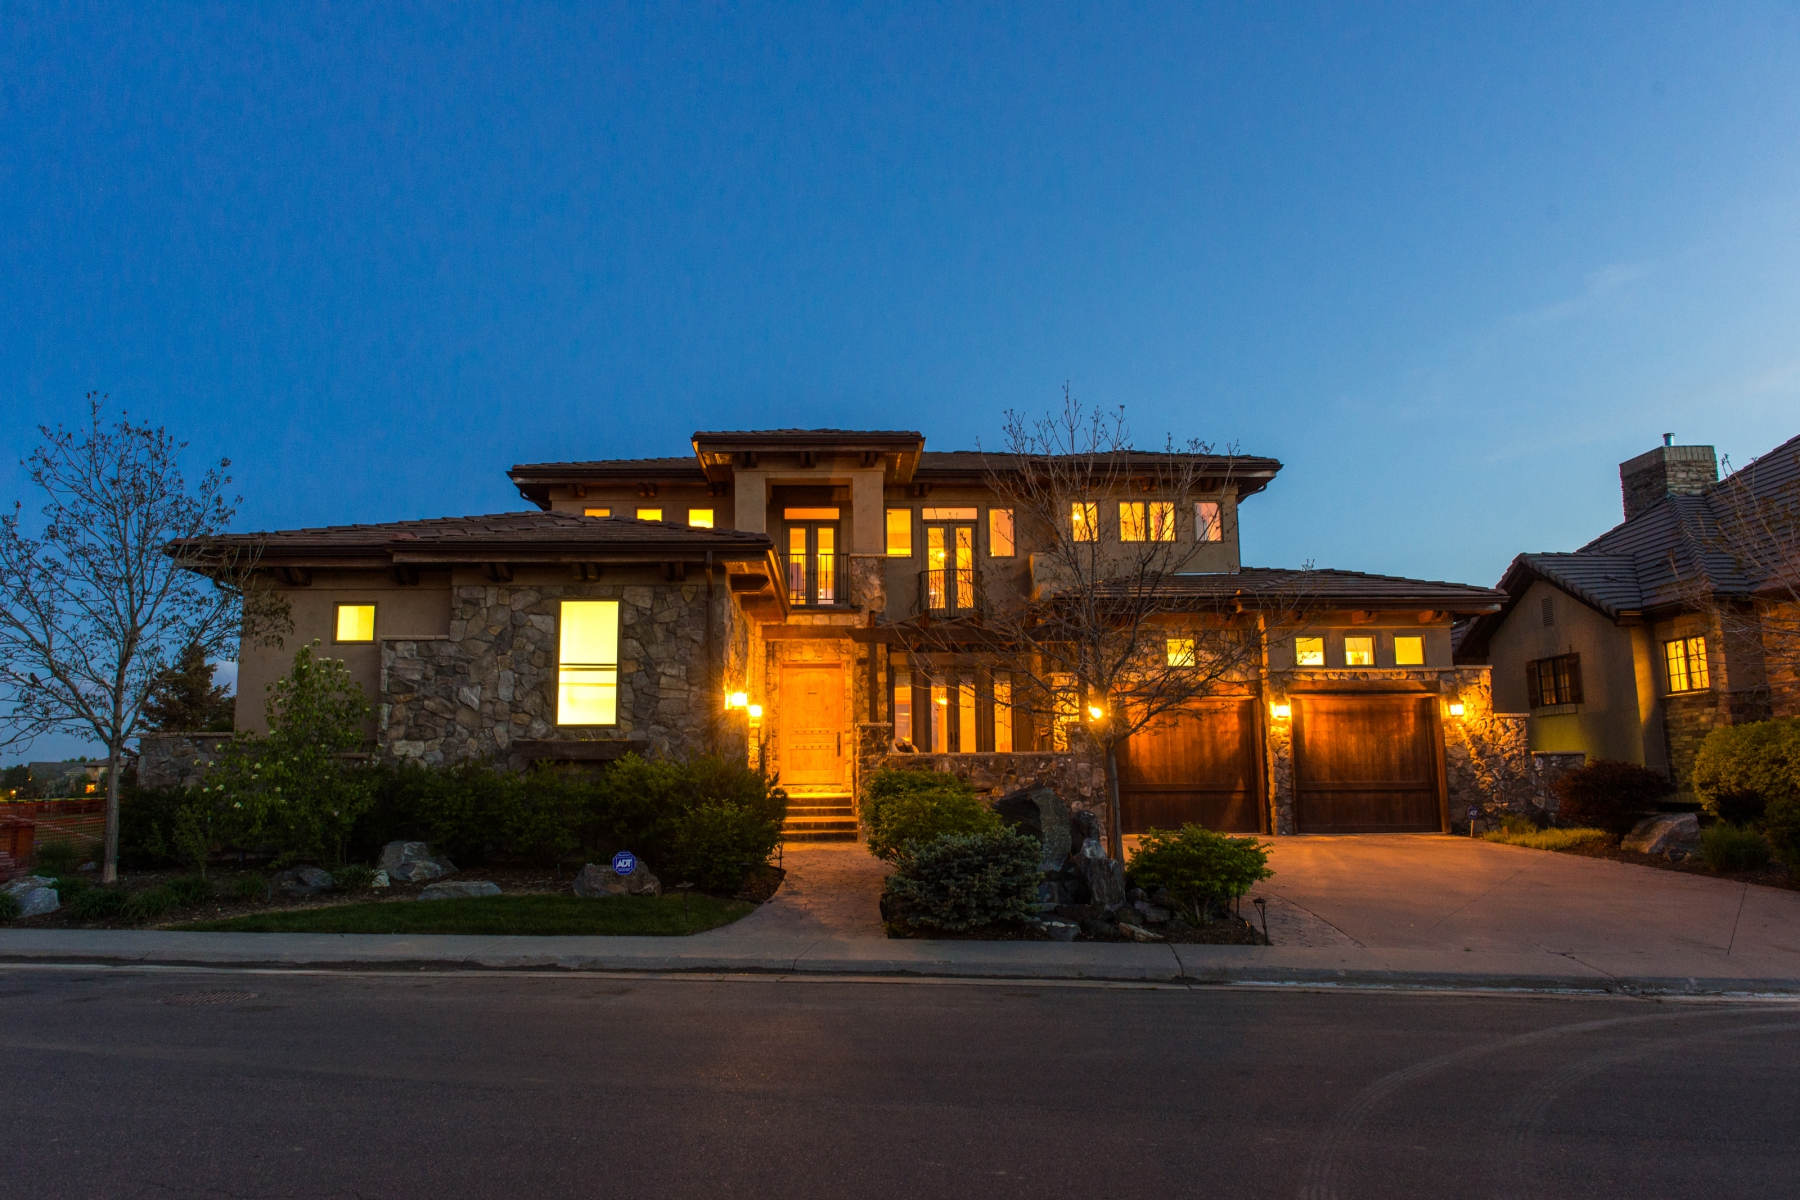 Single Family Home for Sale at Beautiful Estate located at Cherry Creek Country Club 9004 E Wesley Ave Denver, Colorado 80231 United States